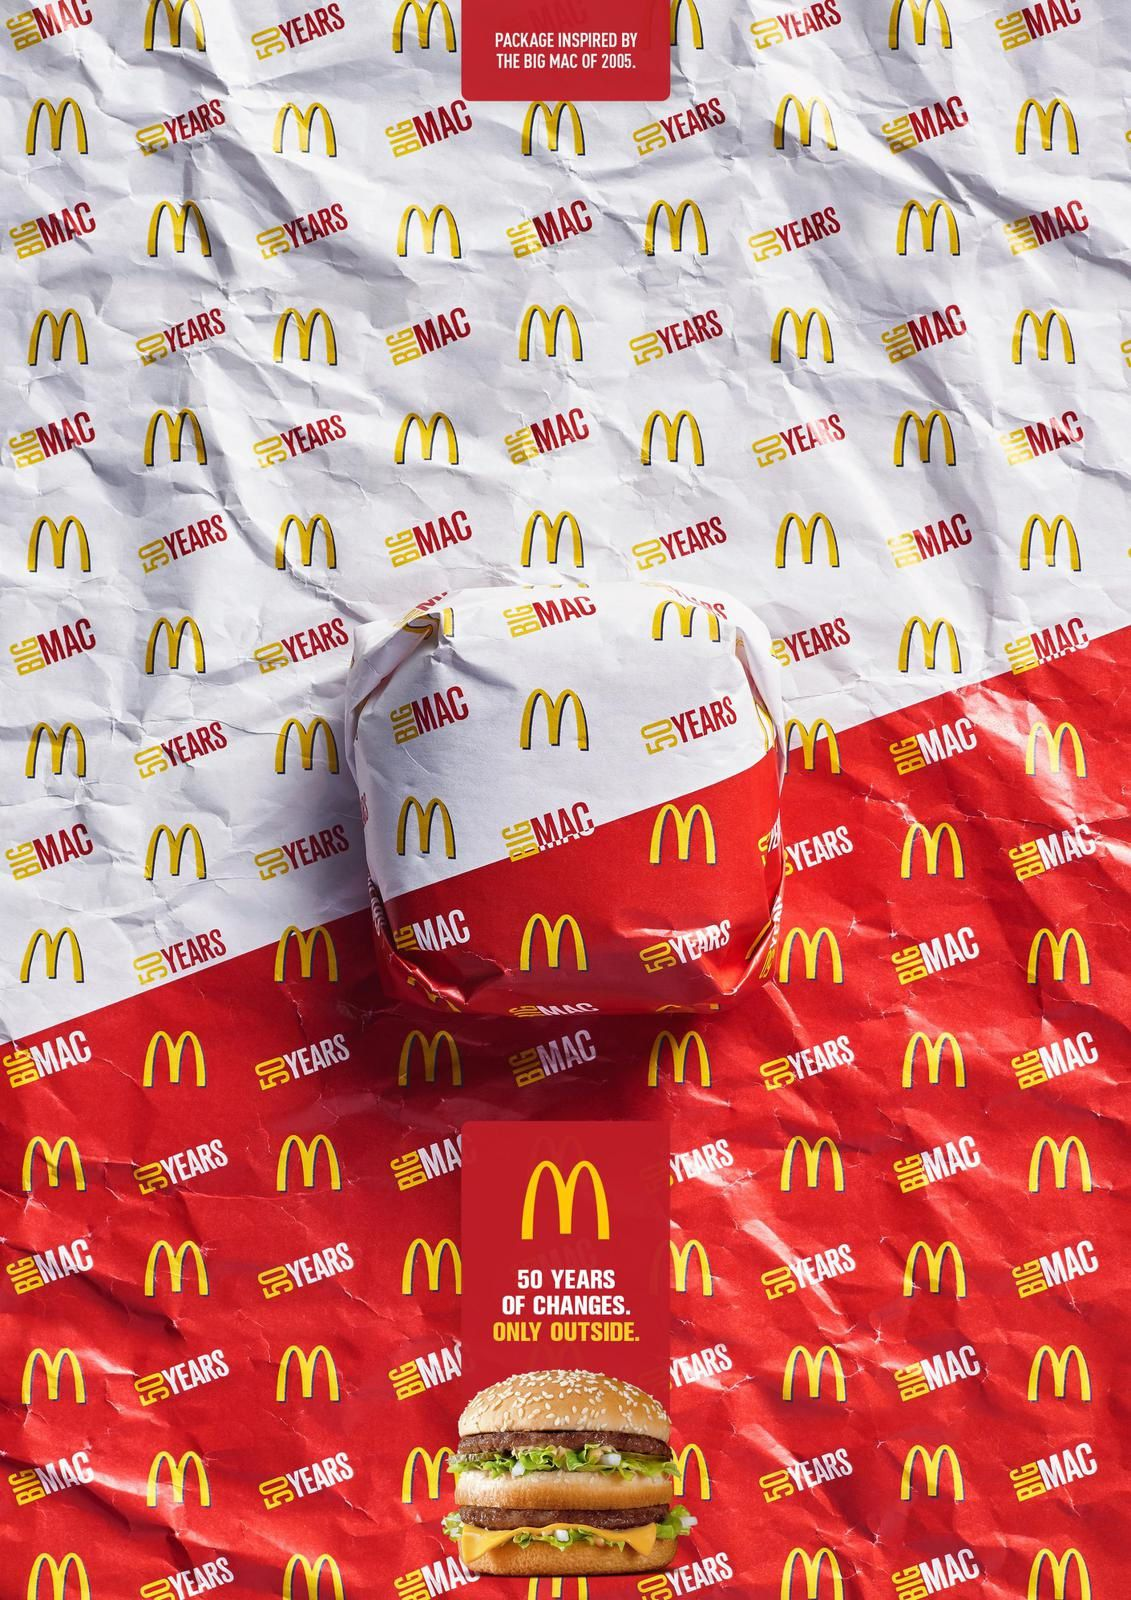 """Big Mac - Packed in History - 2005 I McDonald's : """"Package inspired by the Big Mac of 1968. 50 years of changes. Only outside"""""""